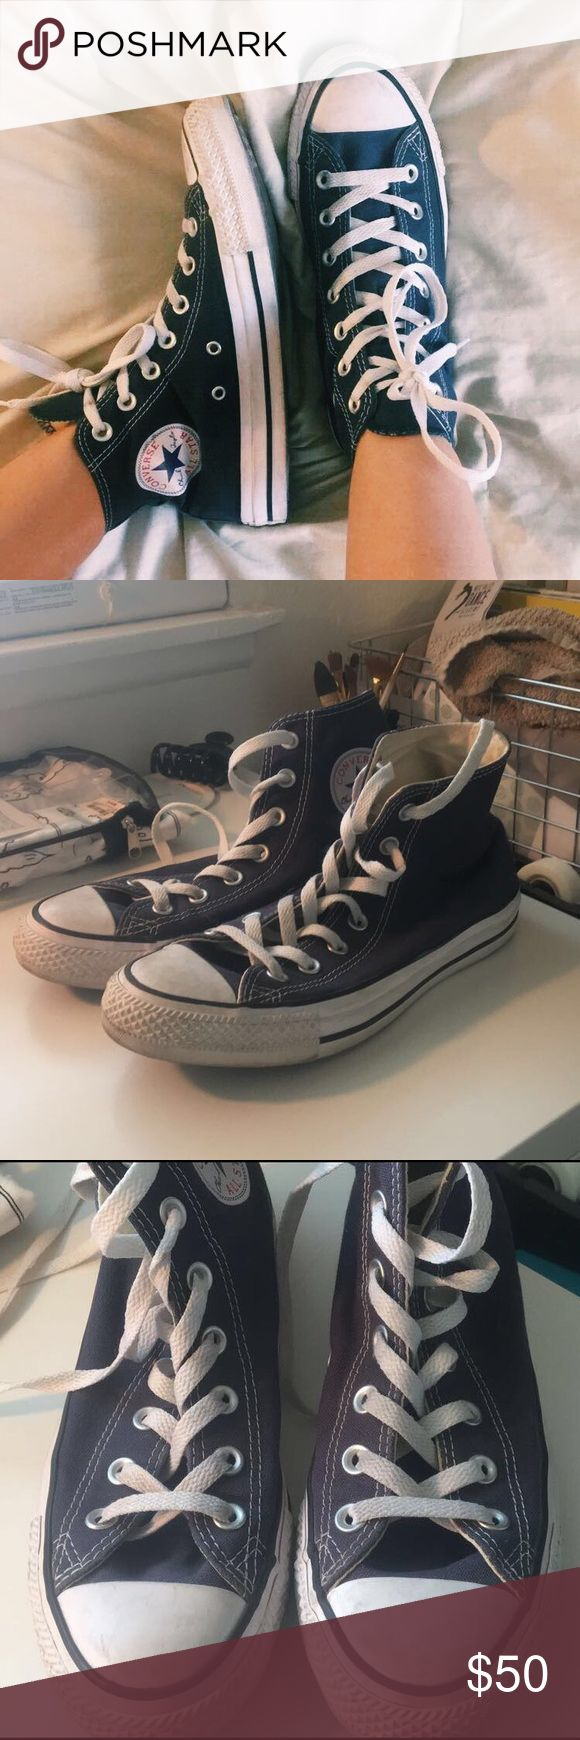 High top navy blue converse High top navy blue converse only worn twice. A little messed up but barley noticeable. Super cute with high waisted shorts in the summer! Converse Shoes